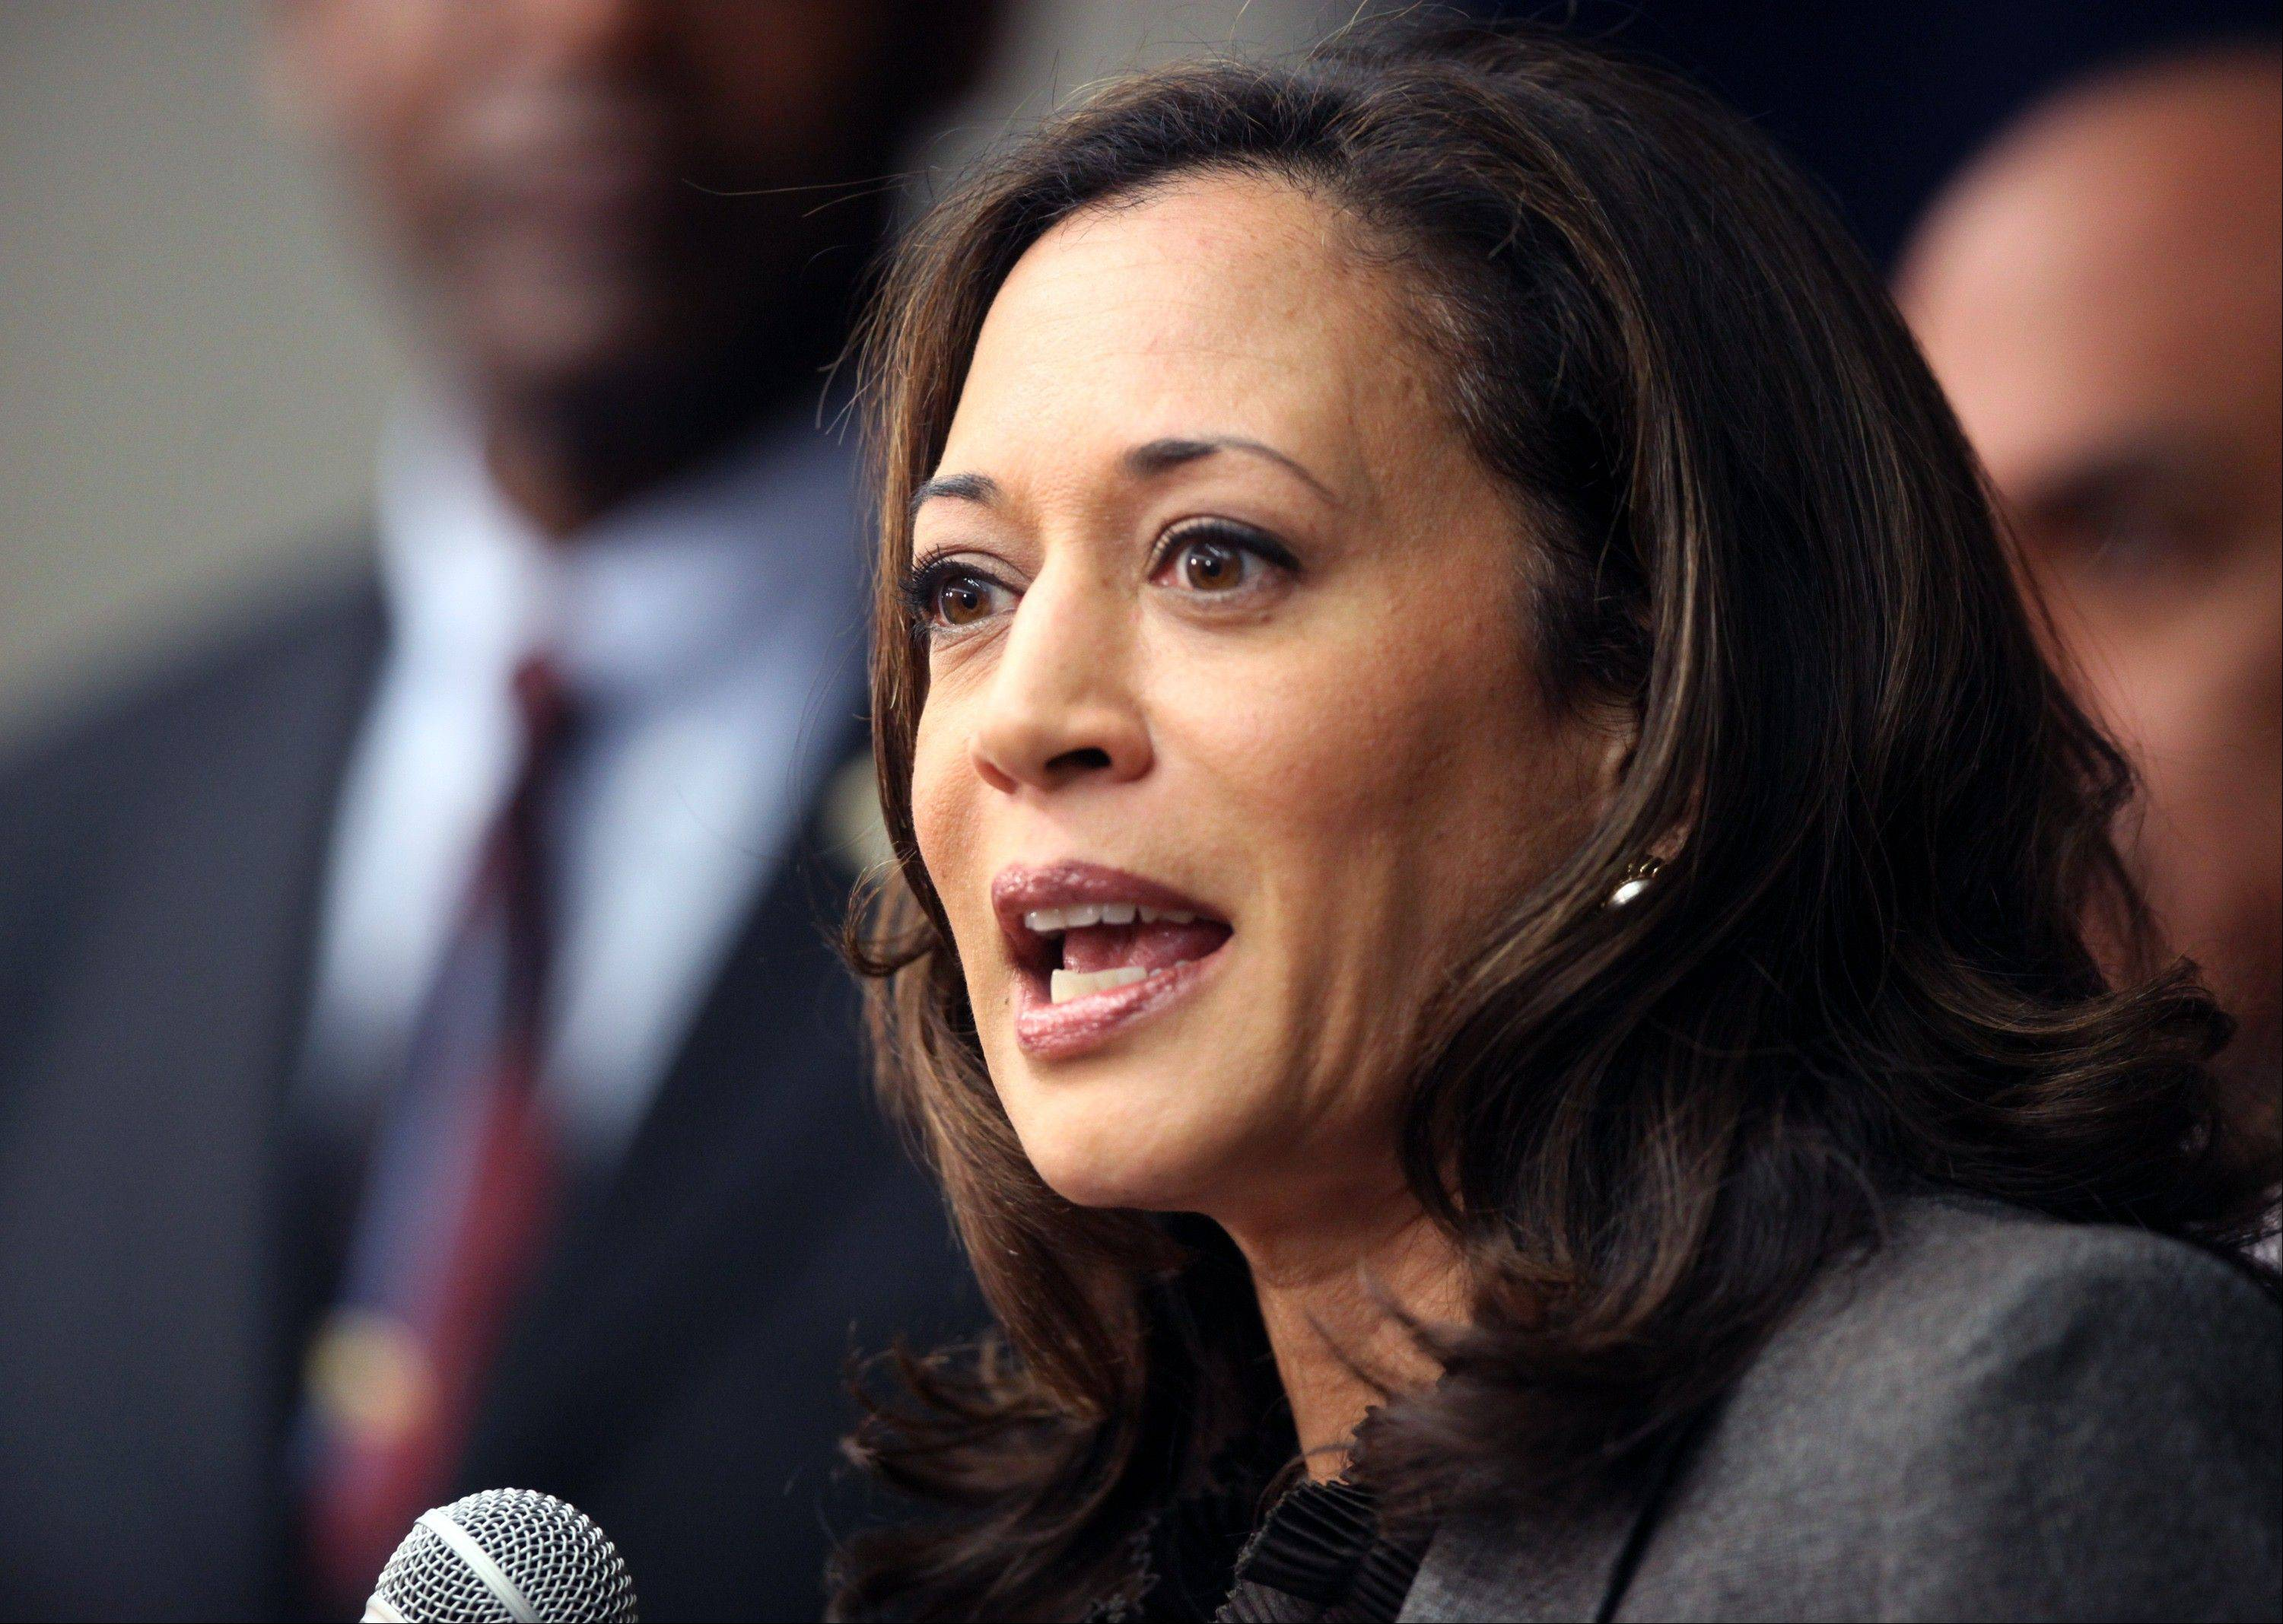 California Attorney General Kamala Harris speaking during a news conference in Los Angeles. President Barack Obama praised Harris for more than her smarts and toughness at a Democratic Party event Thursday. The president also commended Harris for being �the best-looking attorney general� in the country during a Democratic fundraising lunch in the Silicon Valley.